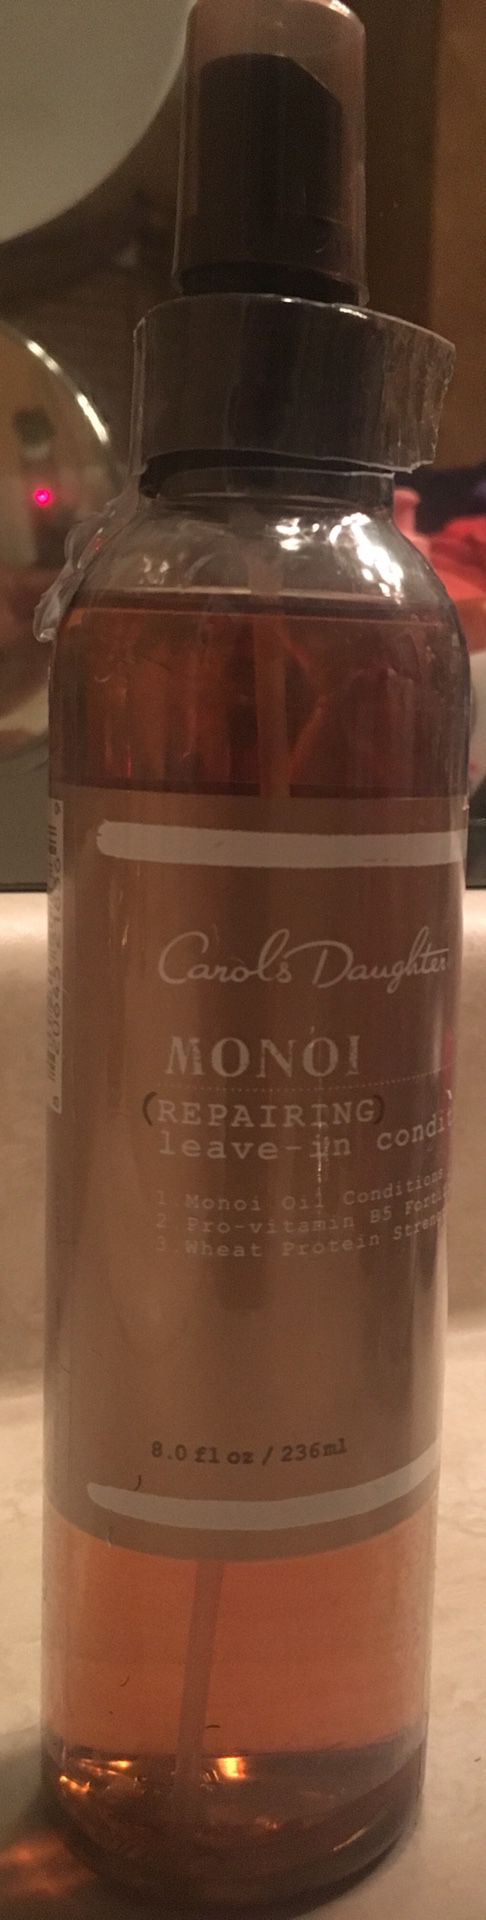 Carol's Daughter Monoi Repairing Leave-in Conditioner 8 oz.